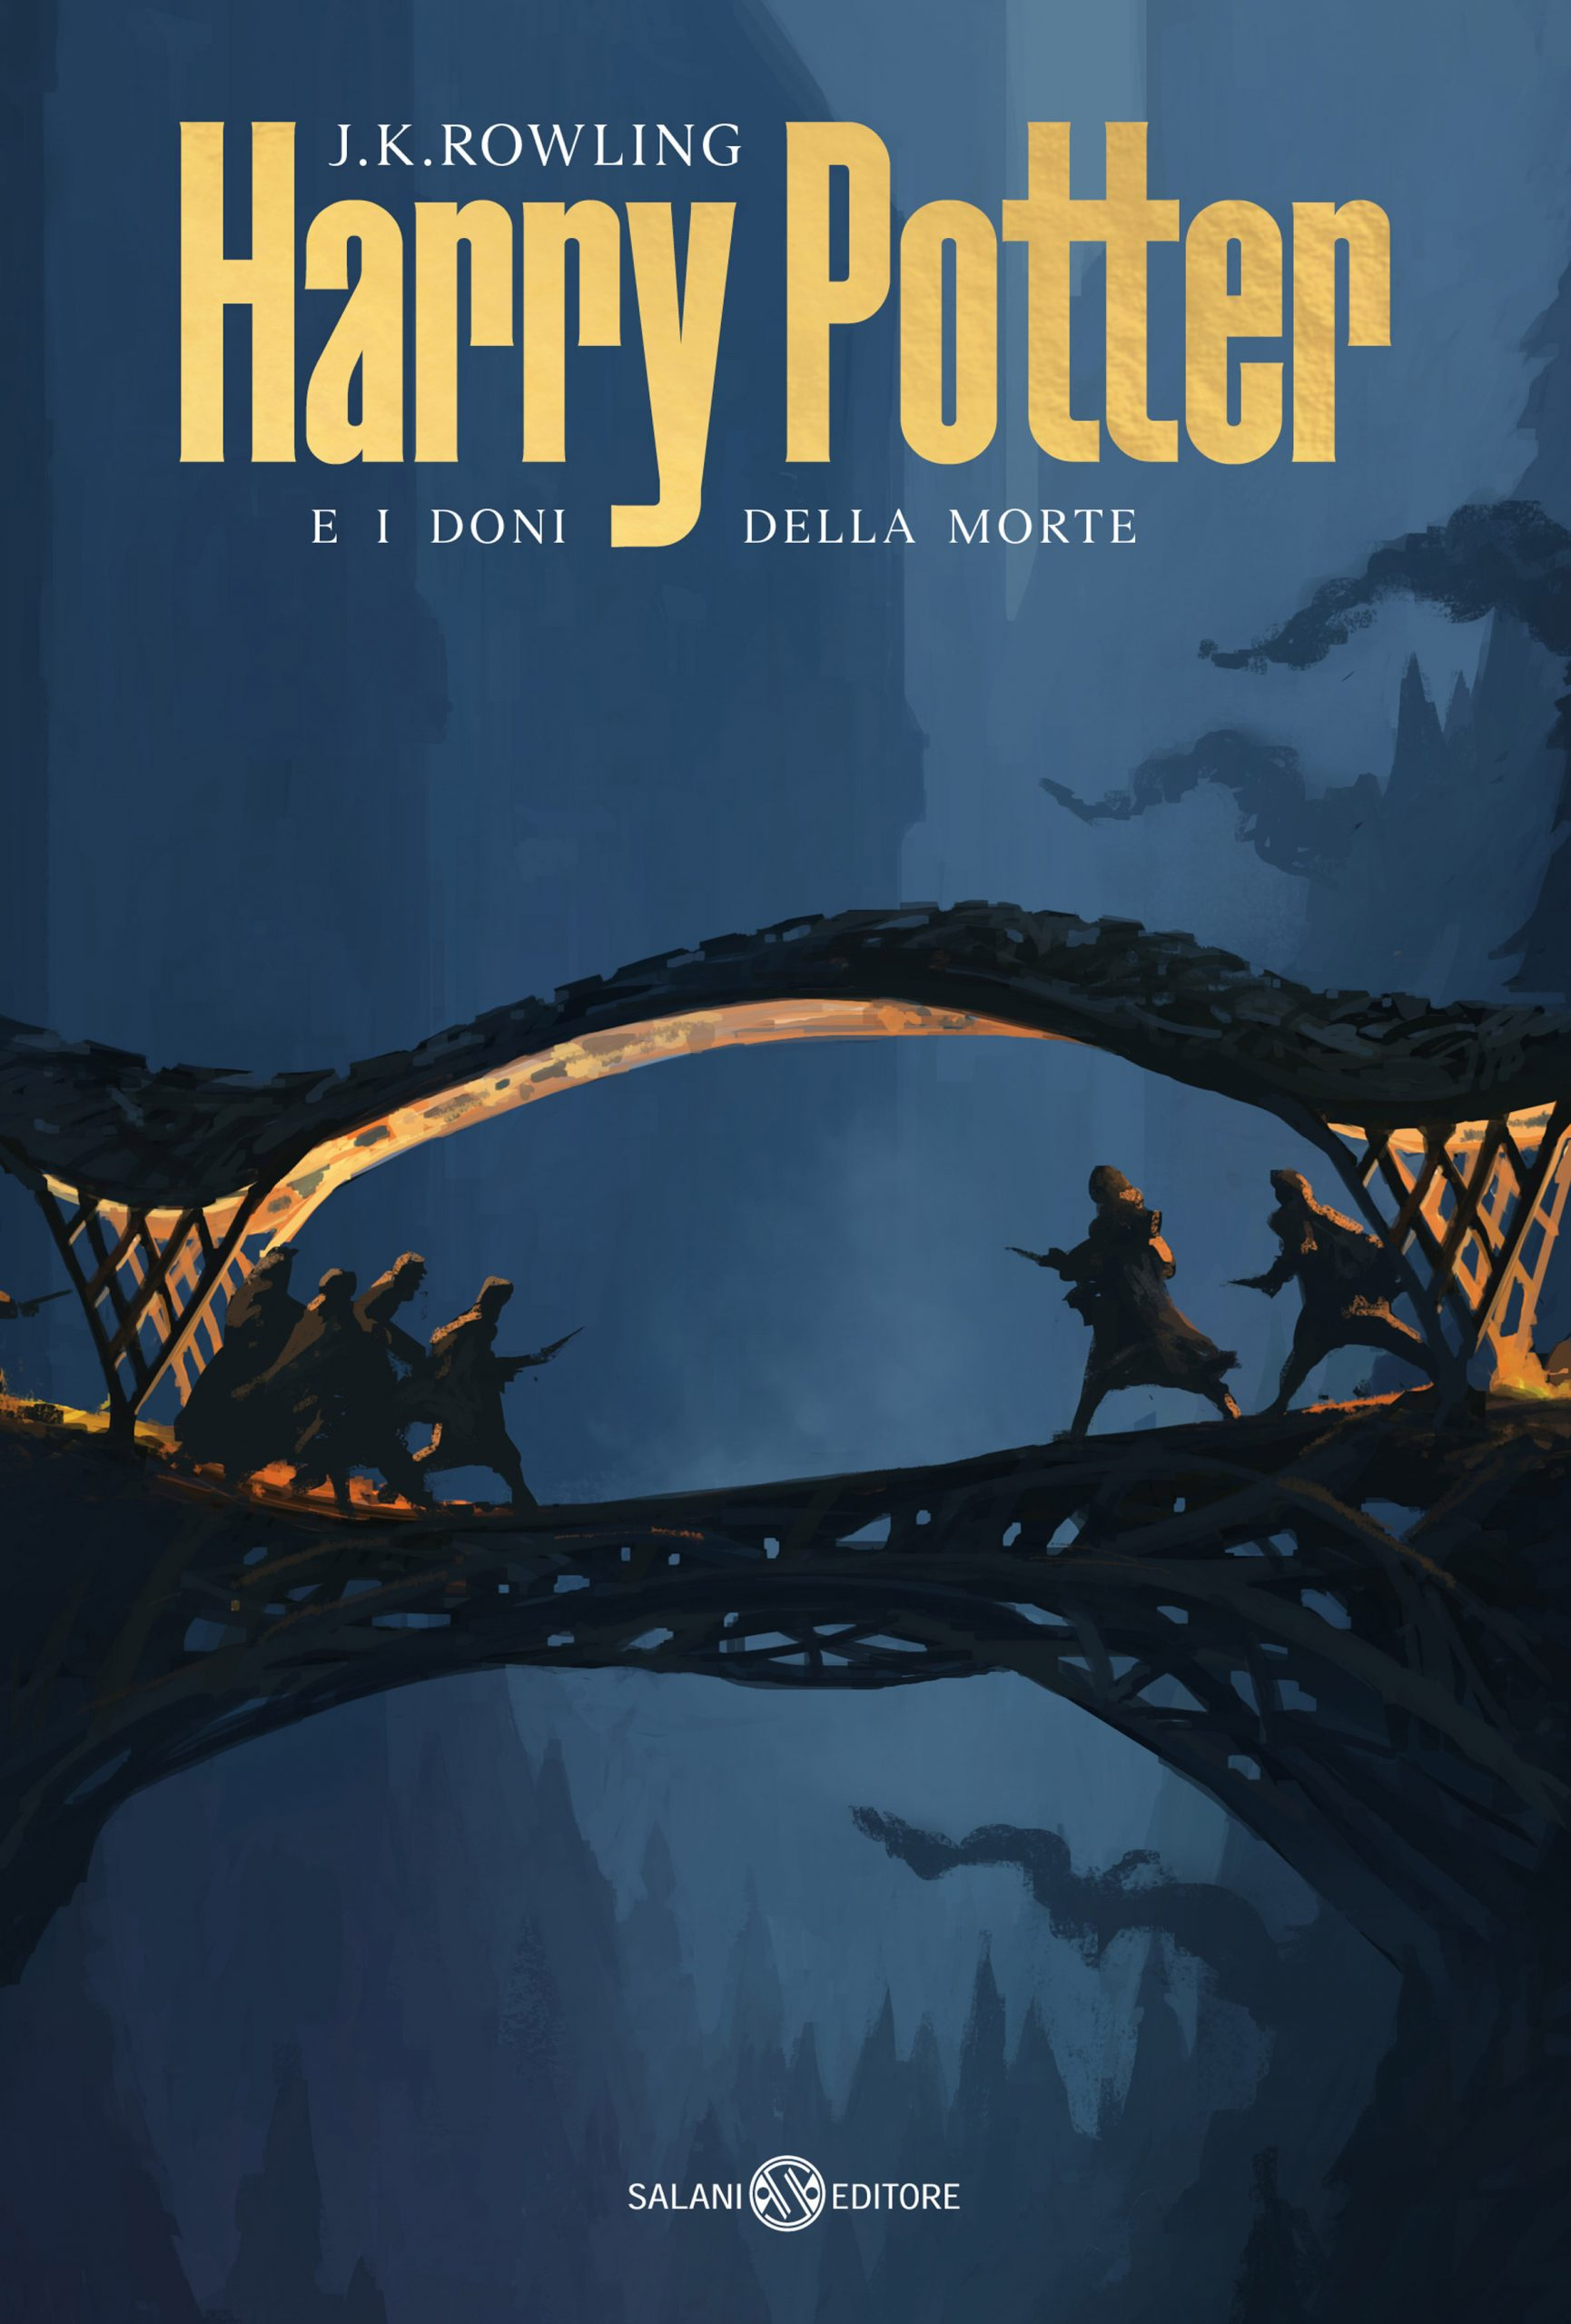 Cover of Harry Potter and the Deathly Hallows designed by Michele De Lucchi